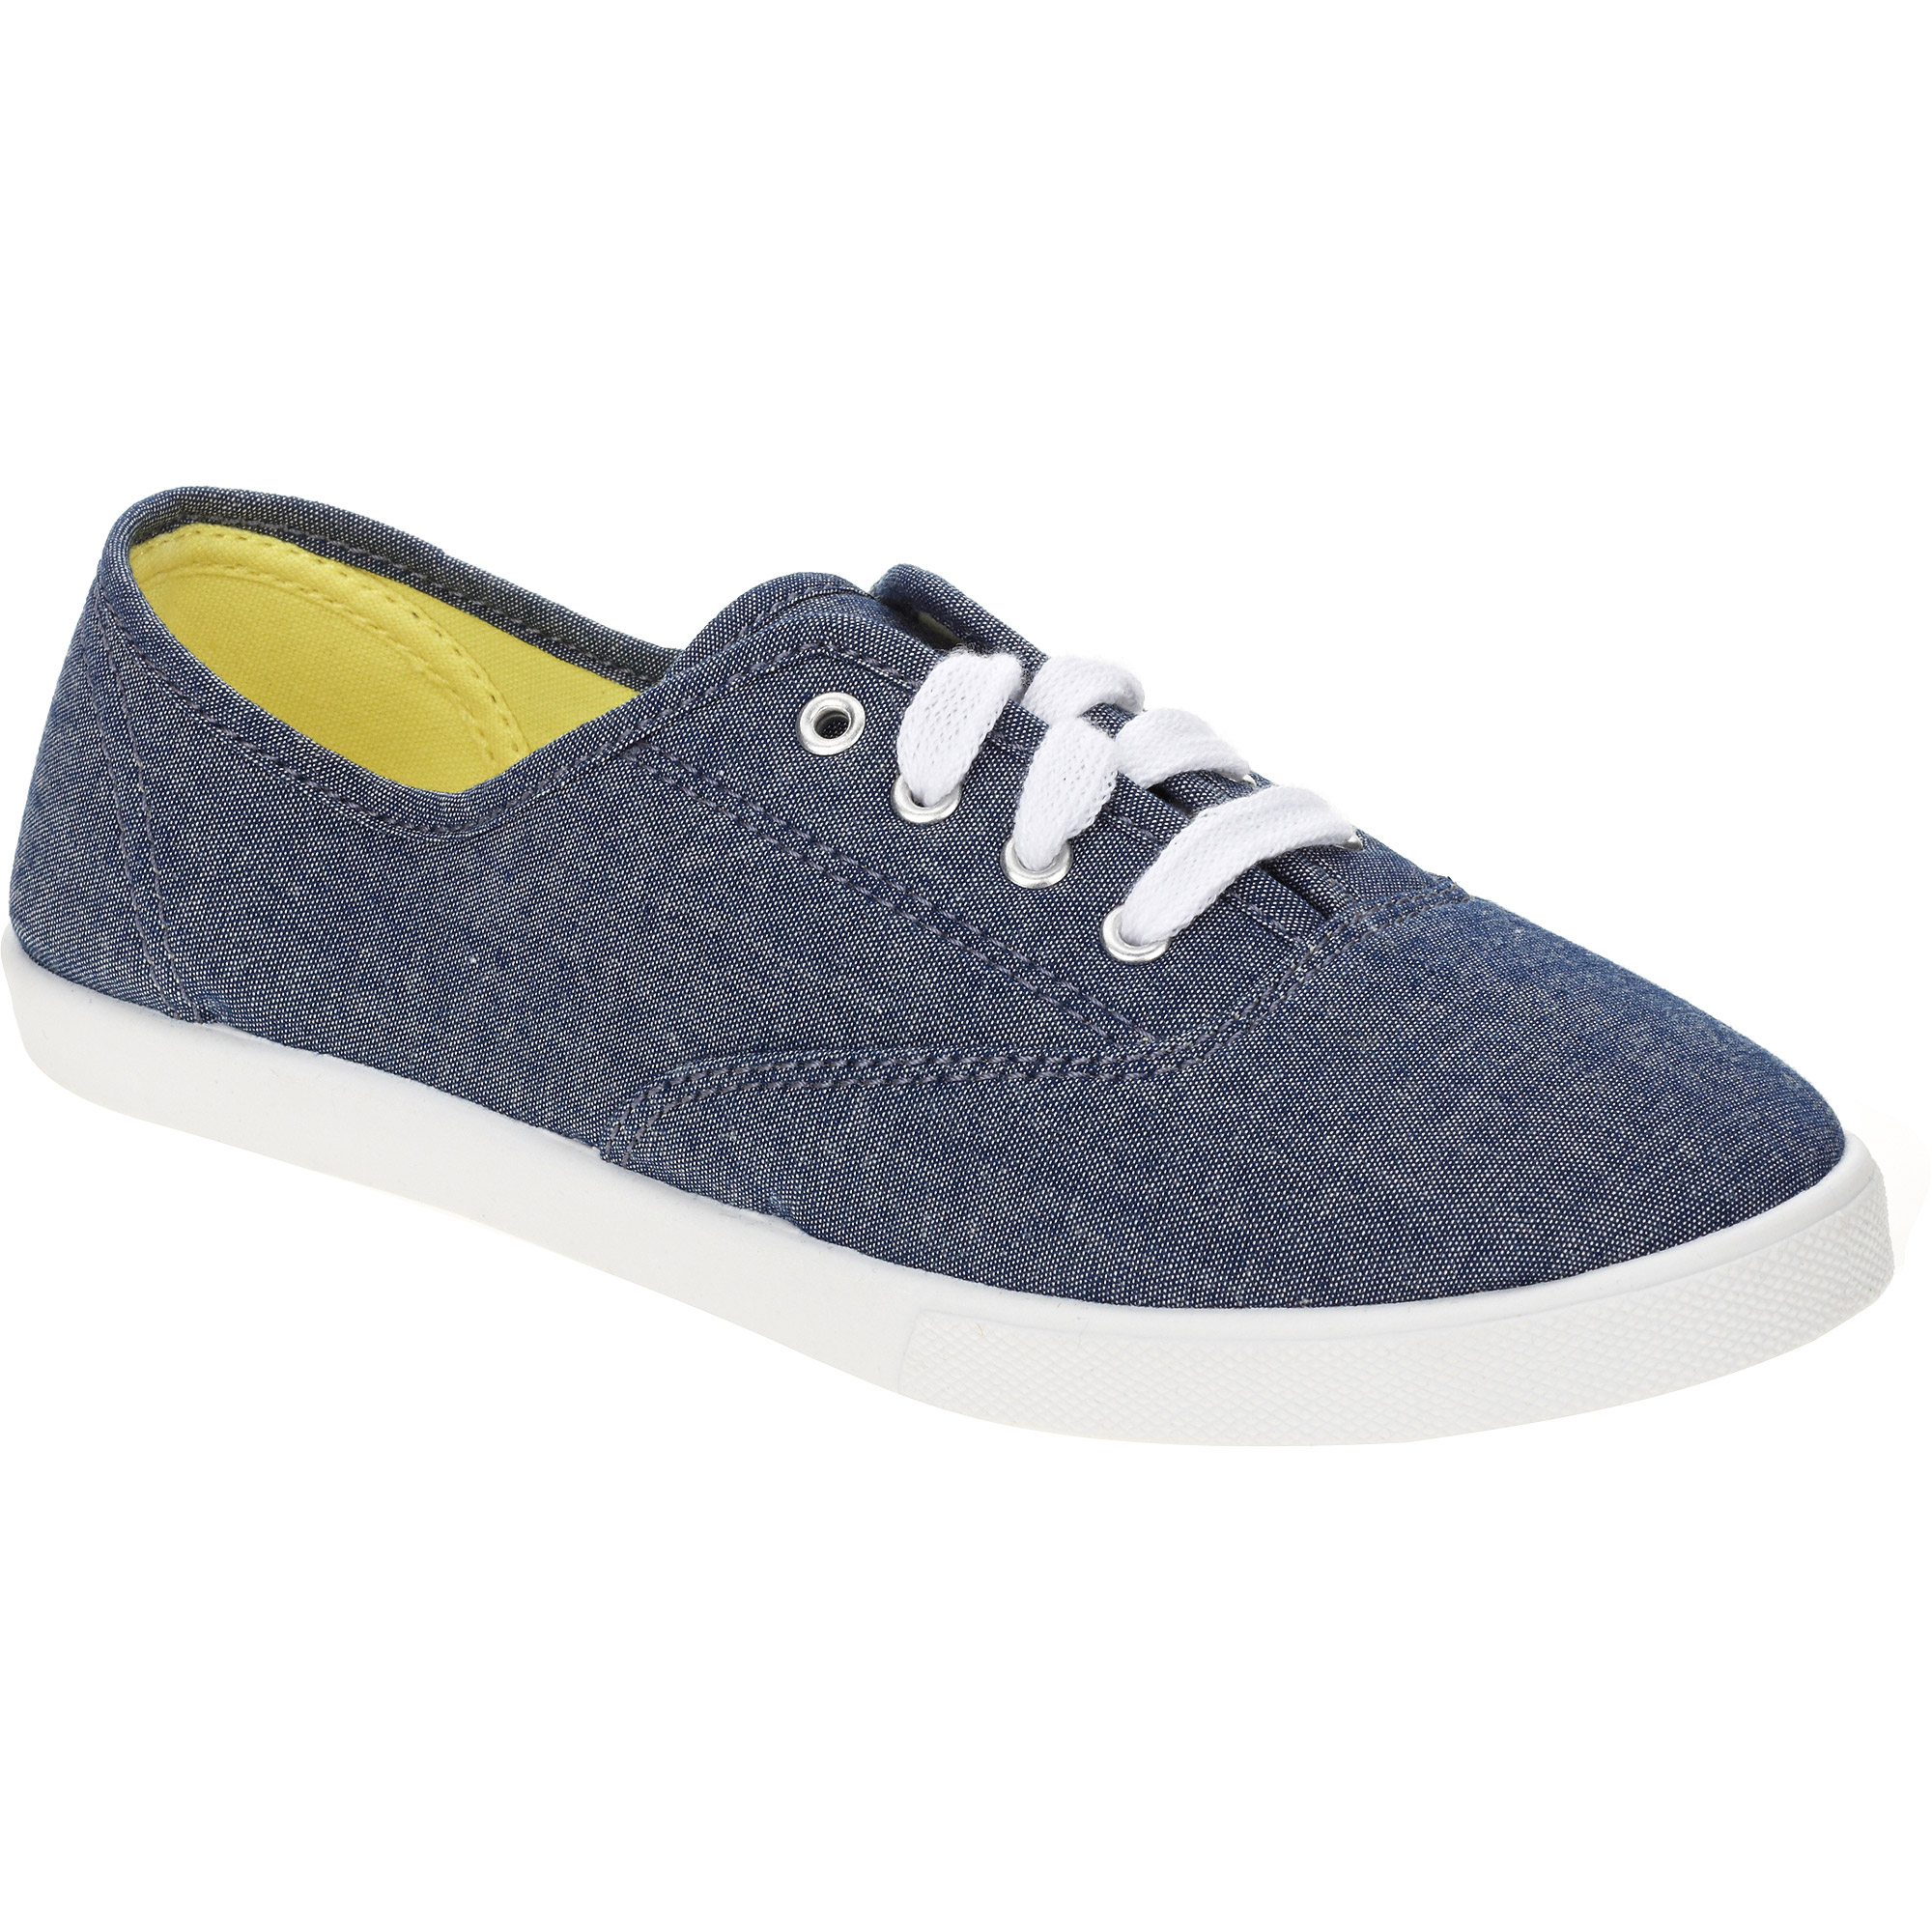 Stylish Lace Up Casual Canvas Shoes Yellow Landscape Sneaker For Men And Women  1SPPJ0GXY